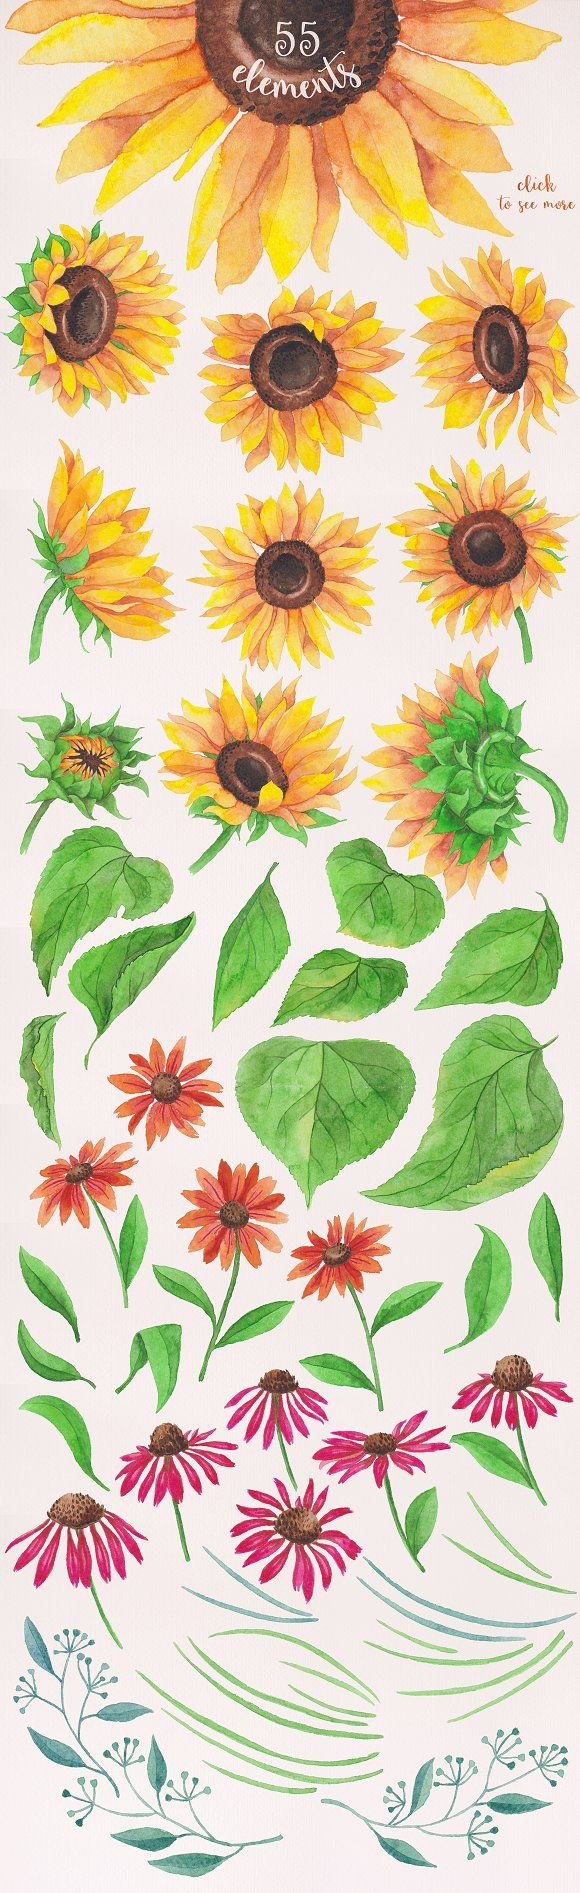 Watercolor Sunflowers - Illustrations